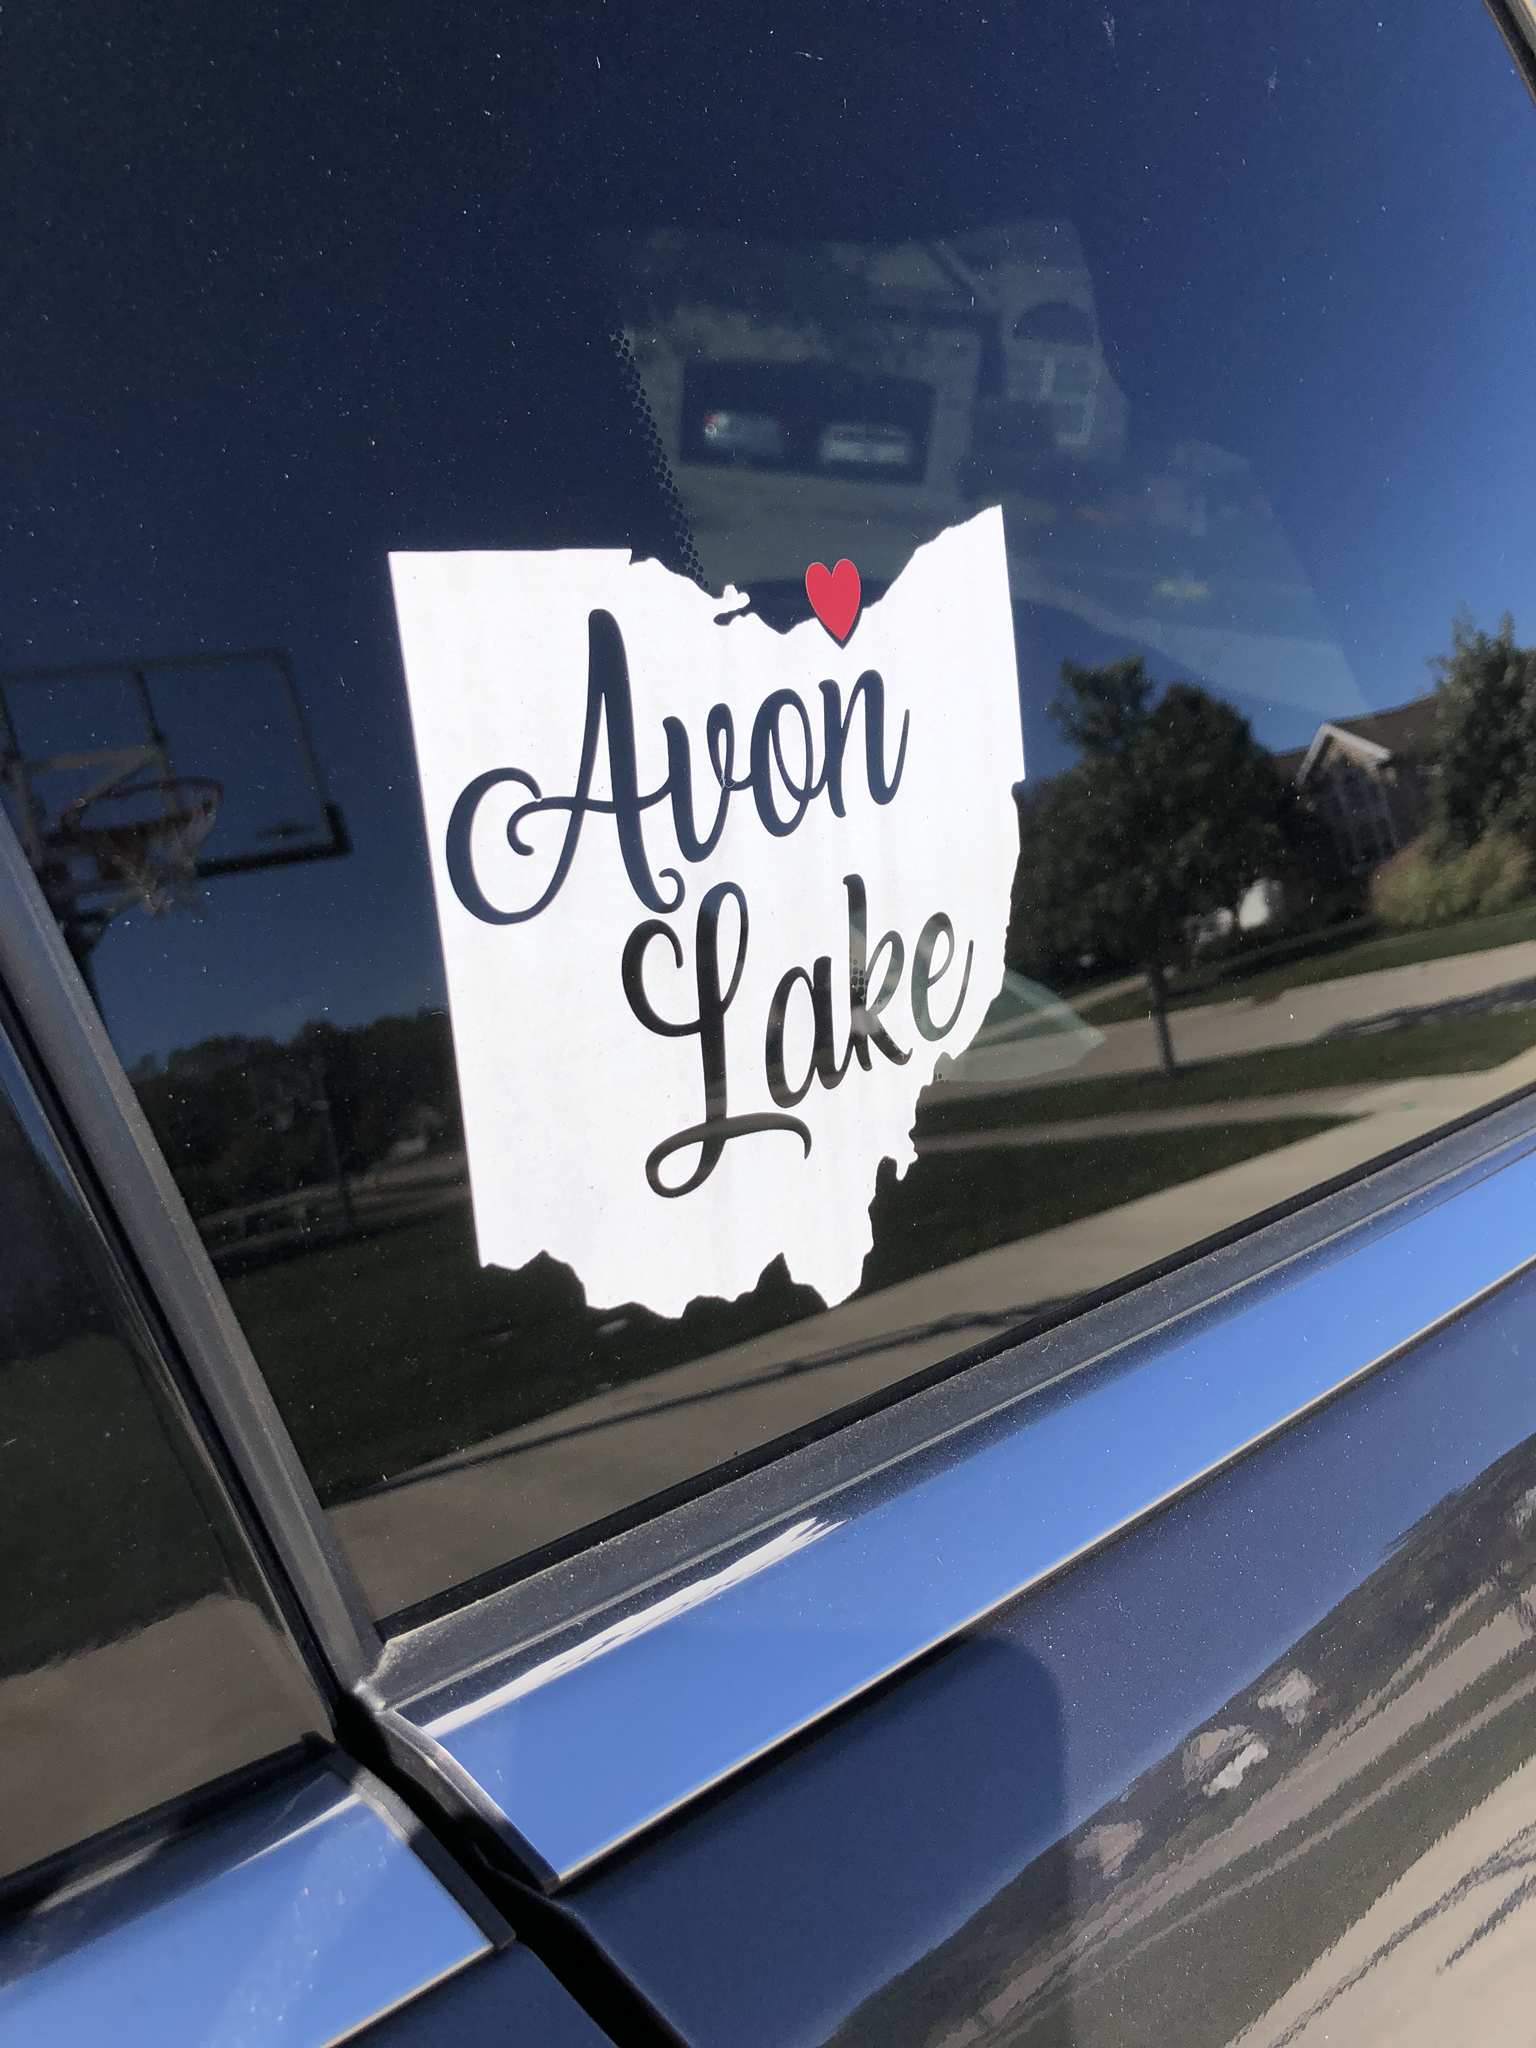 Avon Lake State with heart Car Decal heart_decal